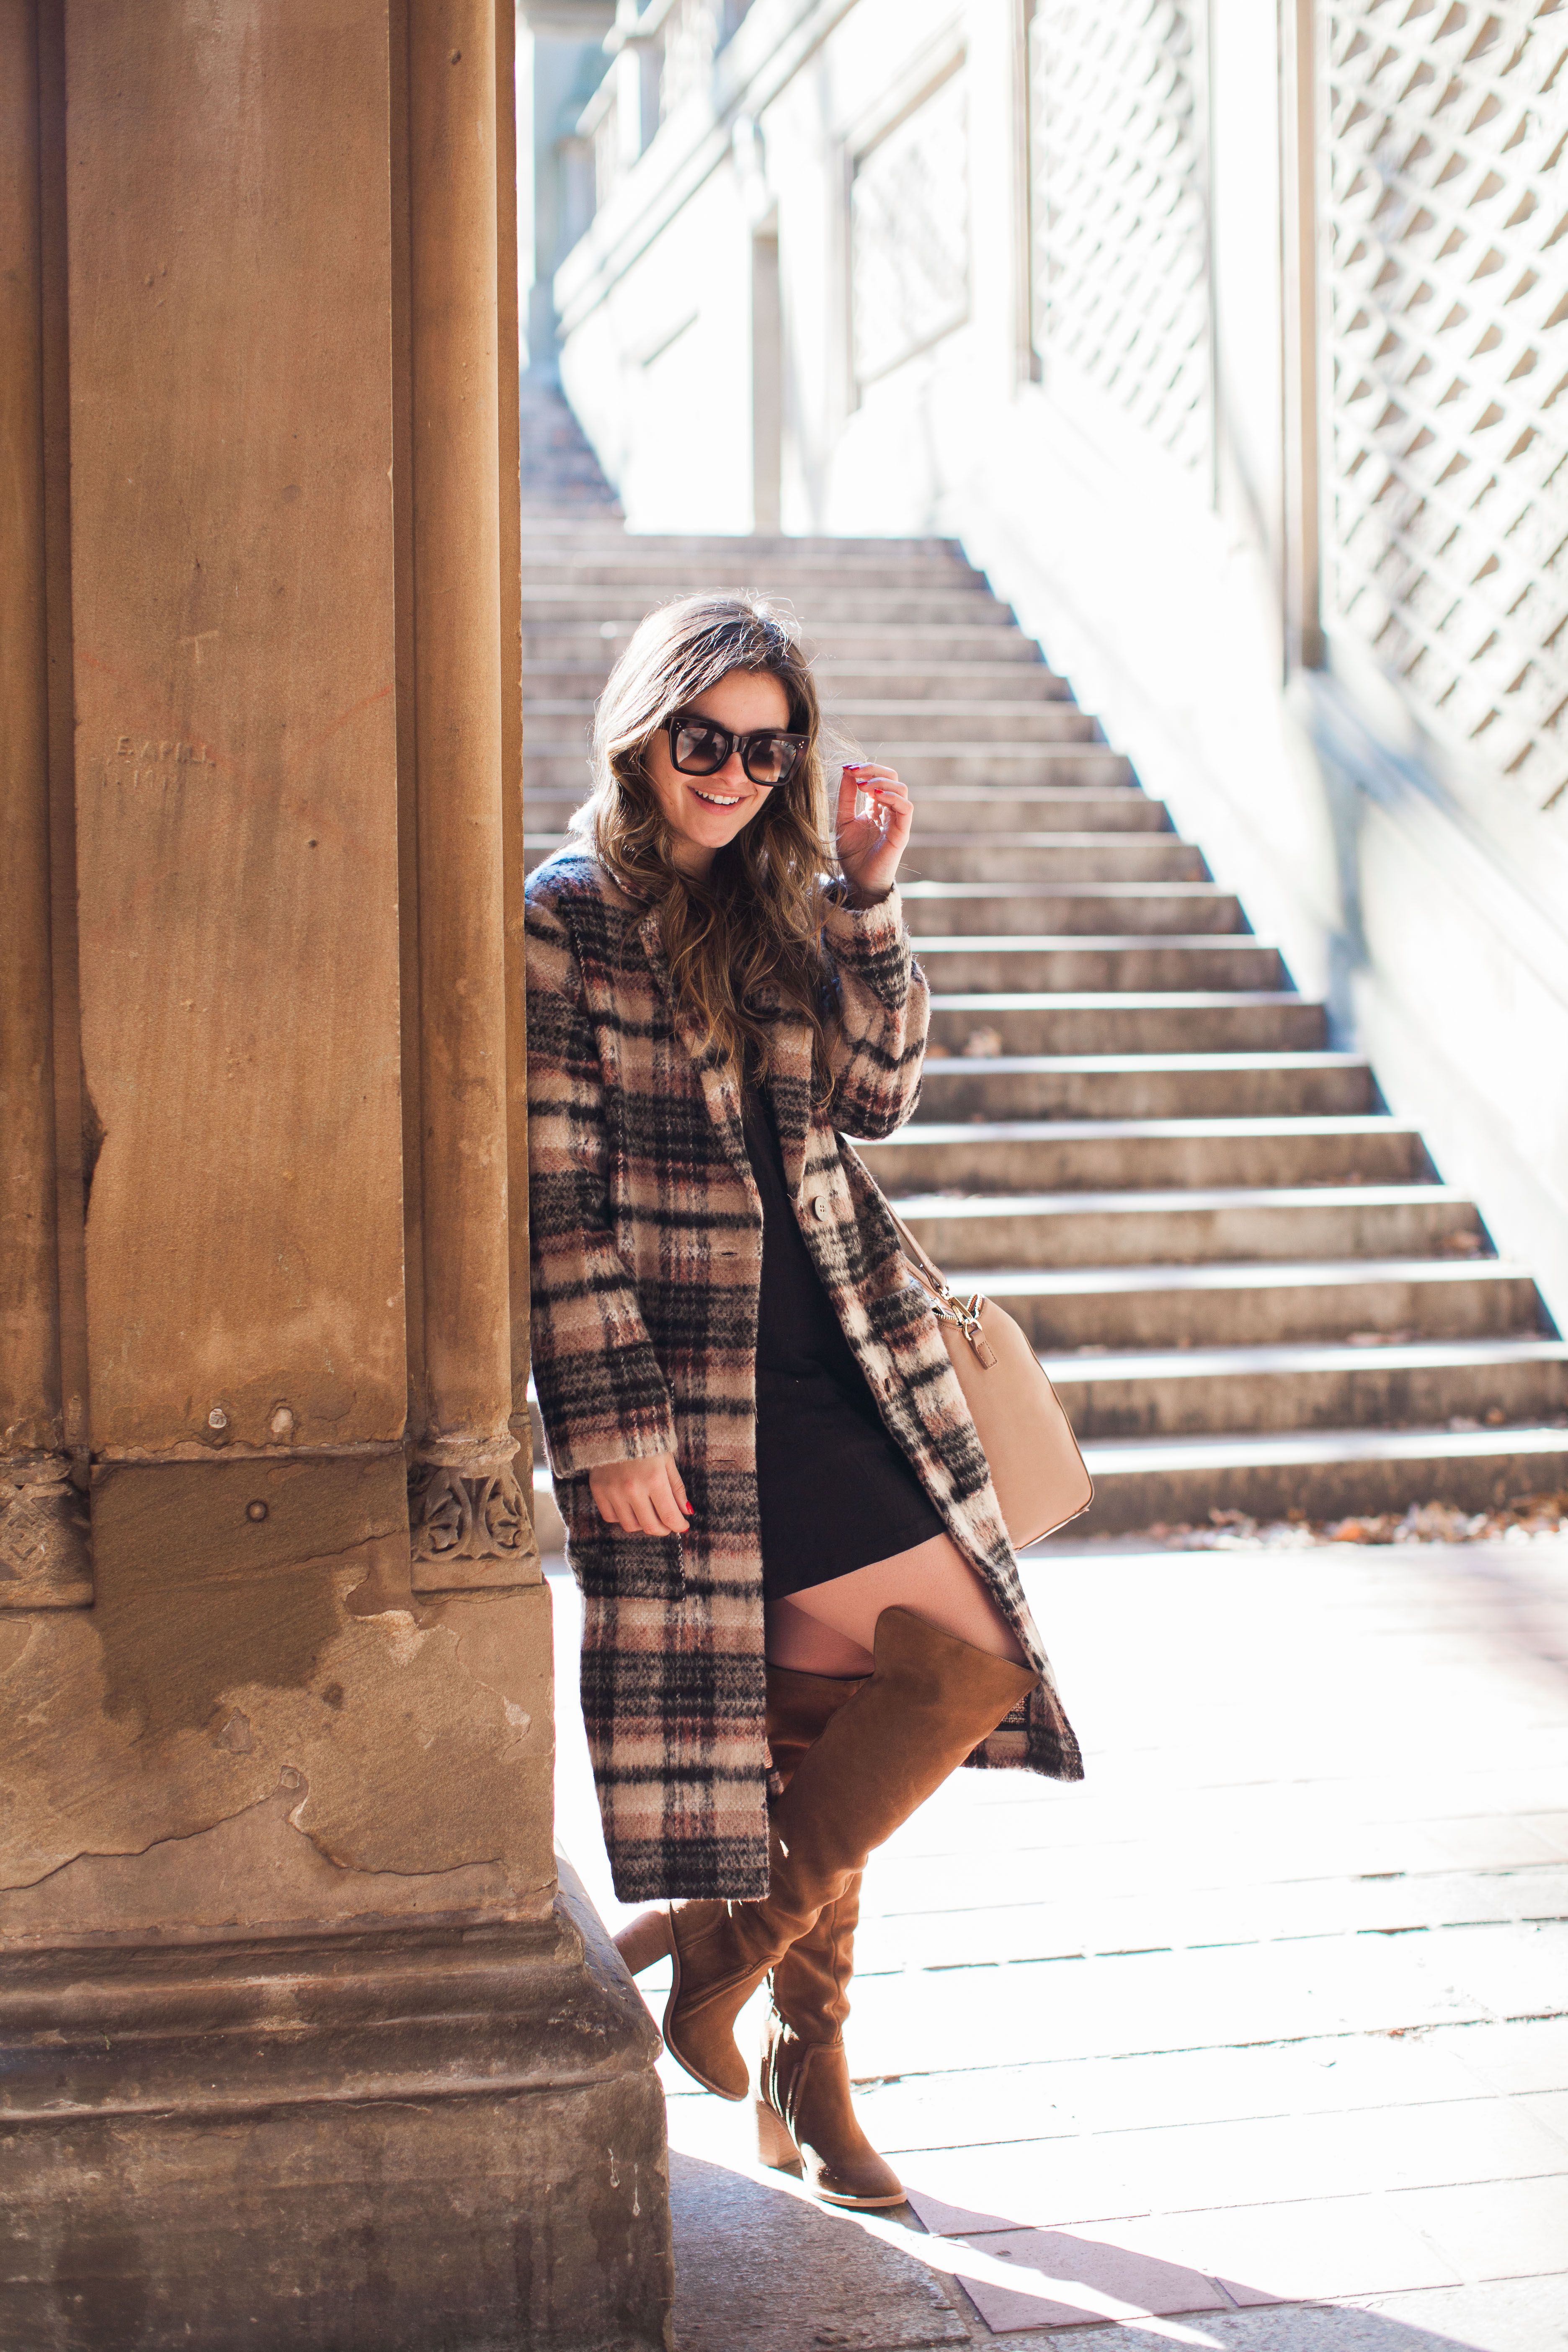 Wearing A Dress With A Long Coat